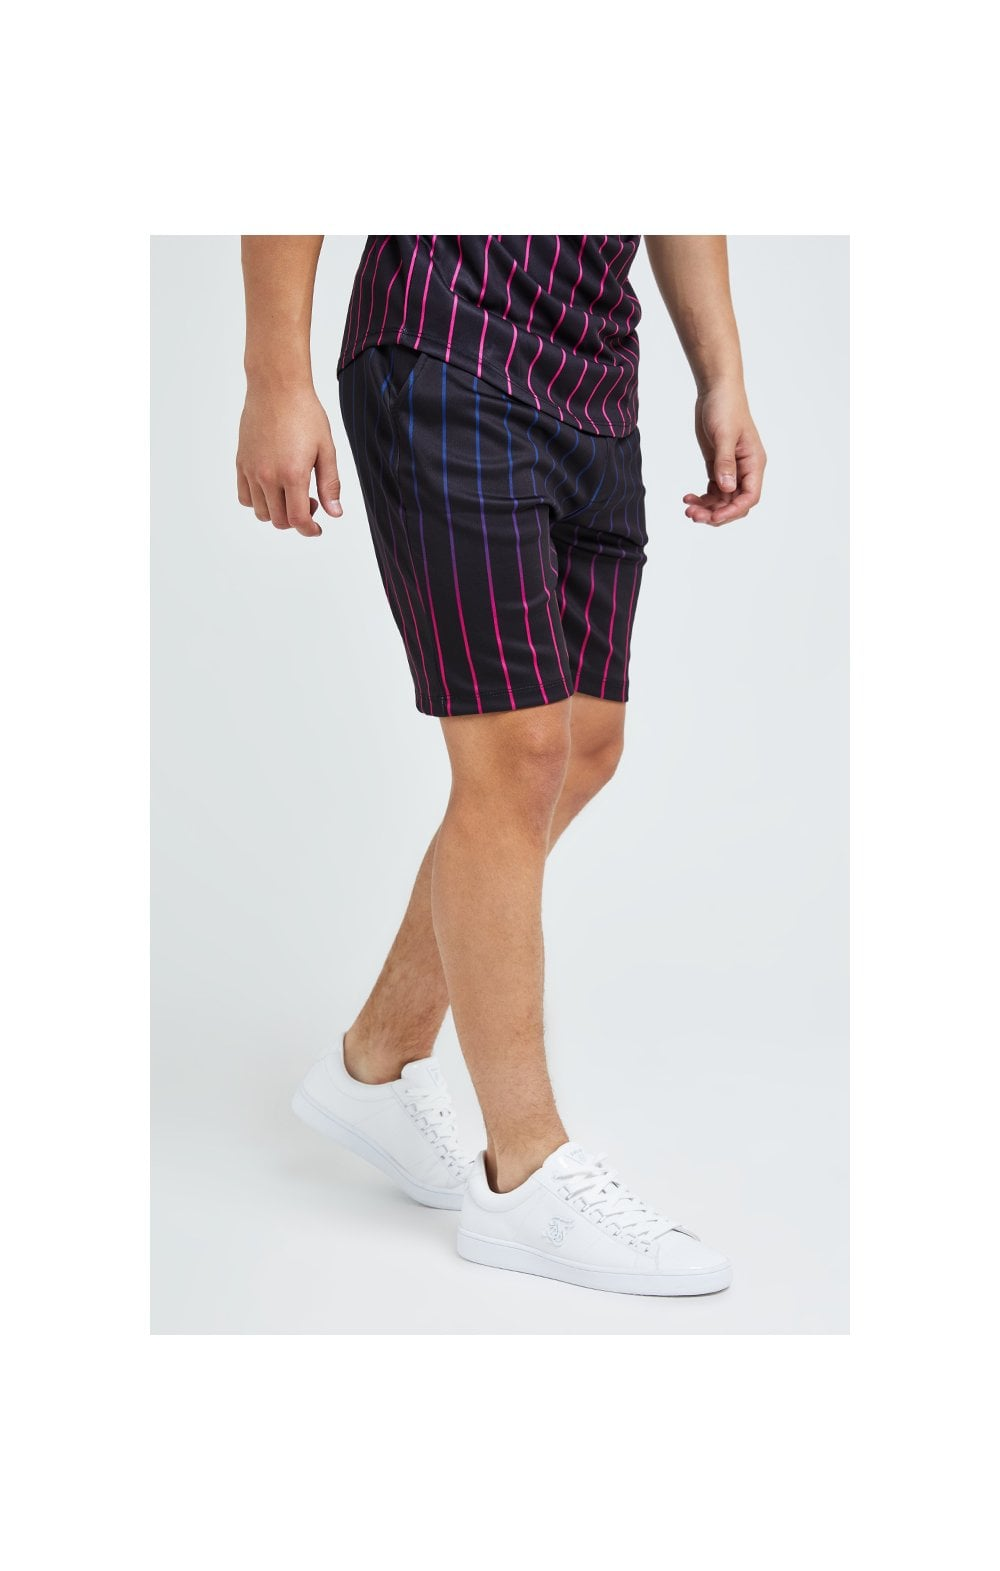 Illusive London Fade Stripe Shorts - Black (1)